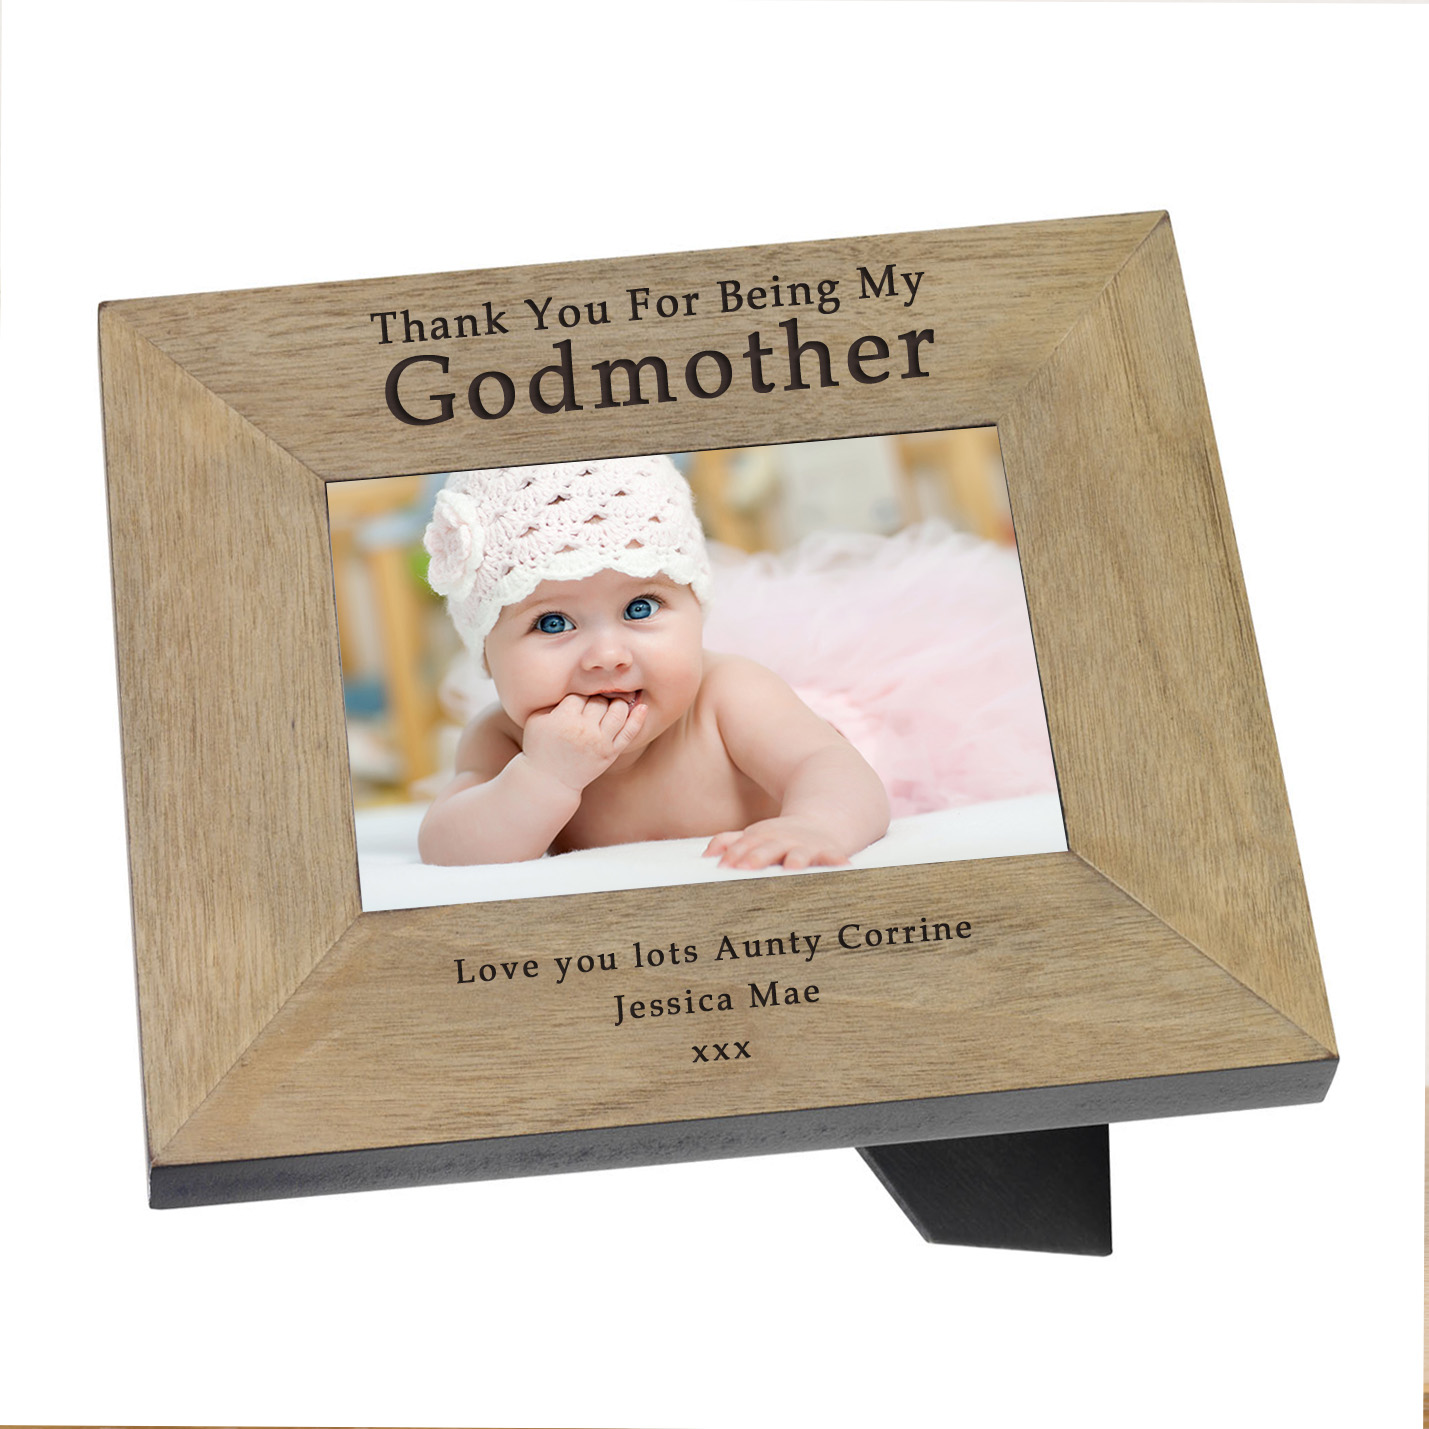 godmother wood frame 7x5